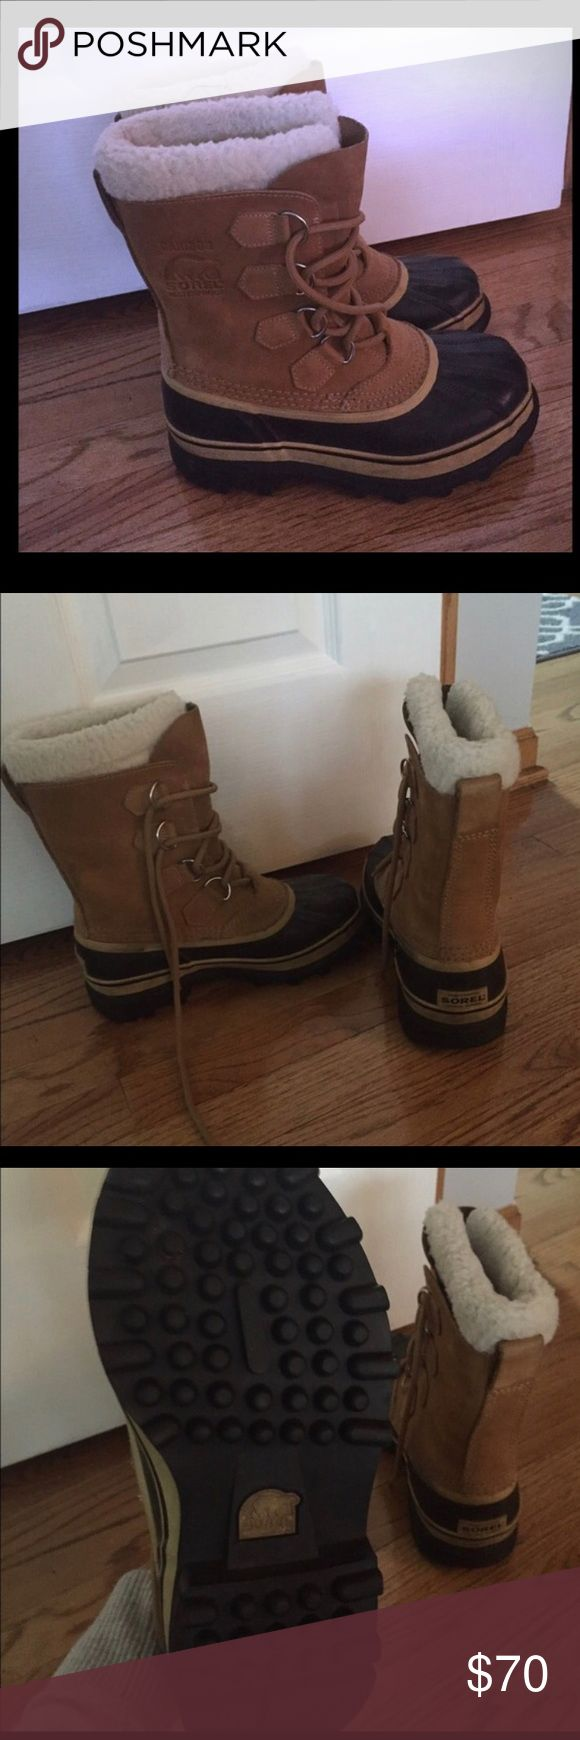 Sorel boots. Great condition. Run big. Men's Sz 6. Would fit: Women's Sz 7 to 7.5. Sorel Shoes Winter & Rain Boots